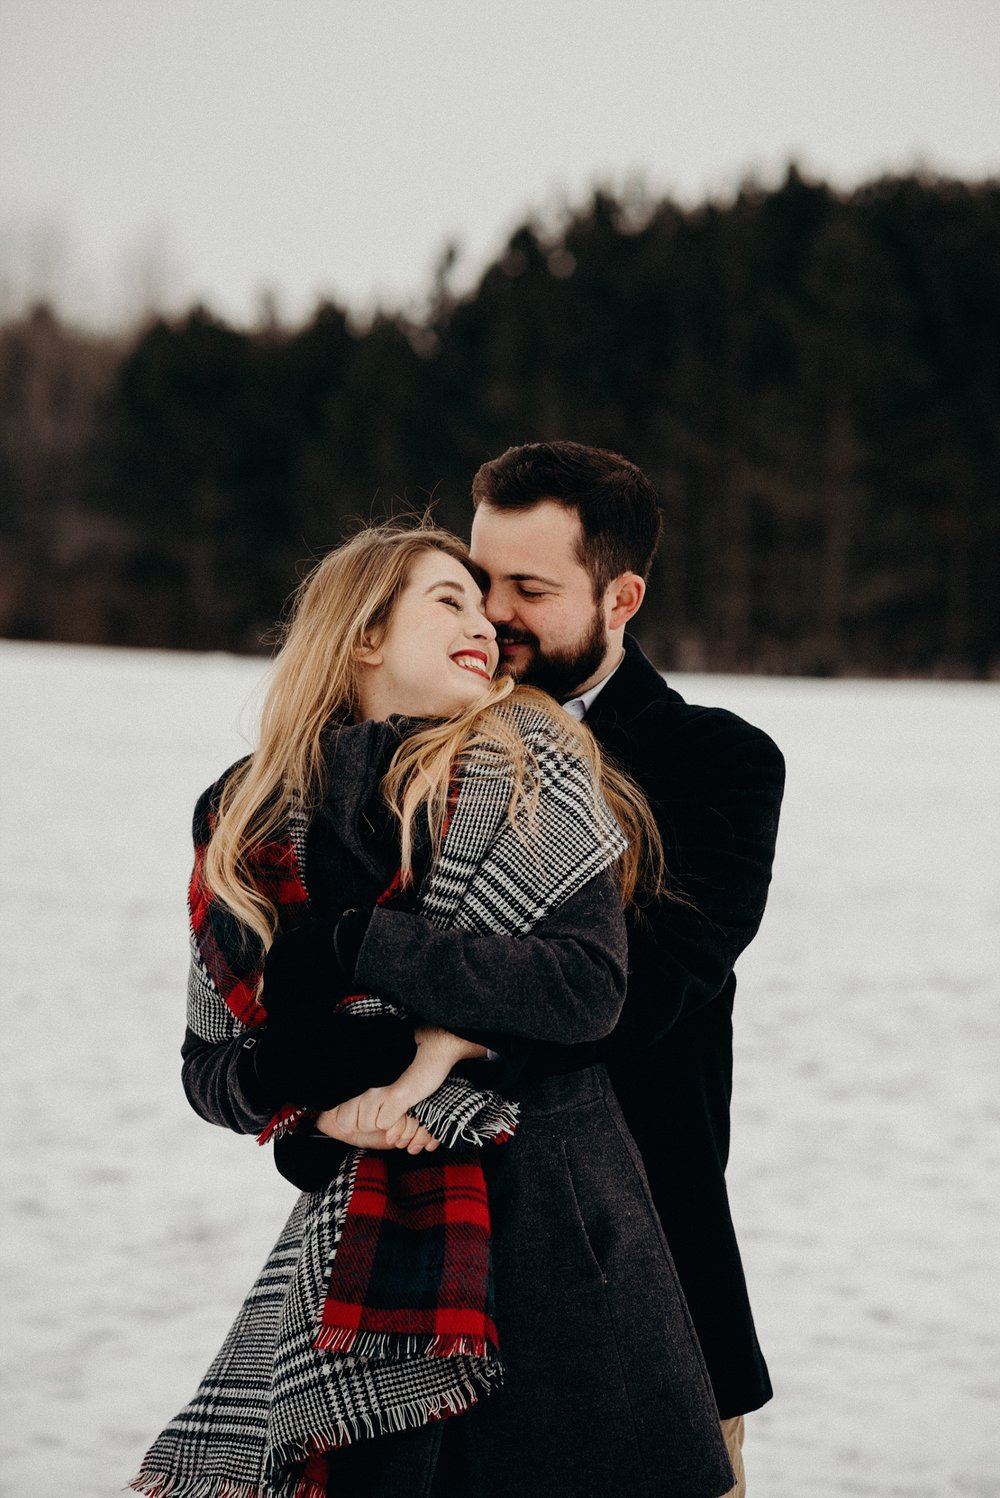 Why You Need a Wedding Website by Mocha Tree Studios Ottawa Toronto Montreal Wedding and Engagement Photographer and Videographer Dark Moody Intimate Authentic Modern Romantic Cinematic Best Candid 8